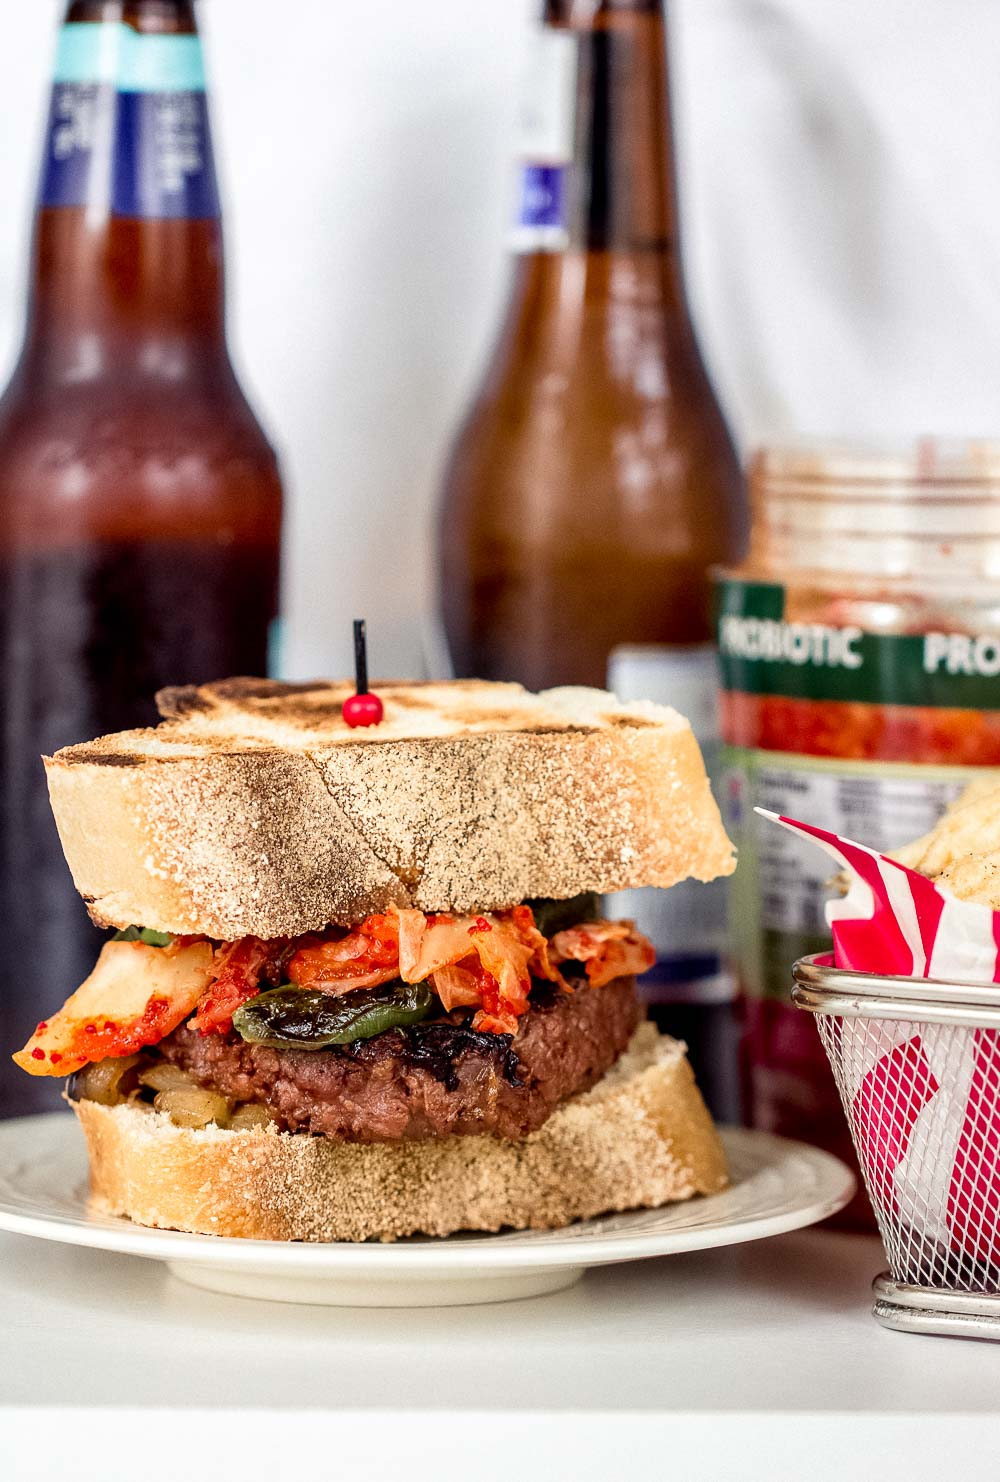 Trying to eat more plant-based food but don't want to give up your favorite dishes? Then you've got to try this Plant-Based Kimchi Burger! A flavorful twist on a classic that you must try.